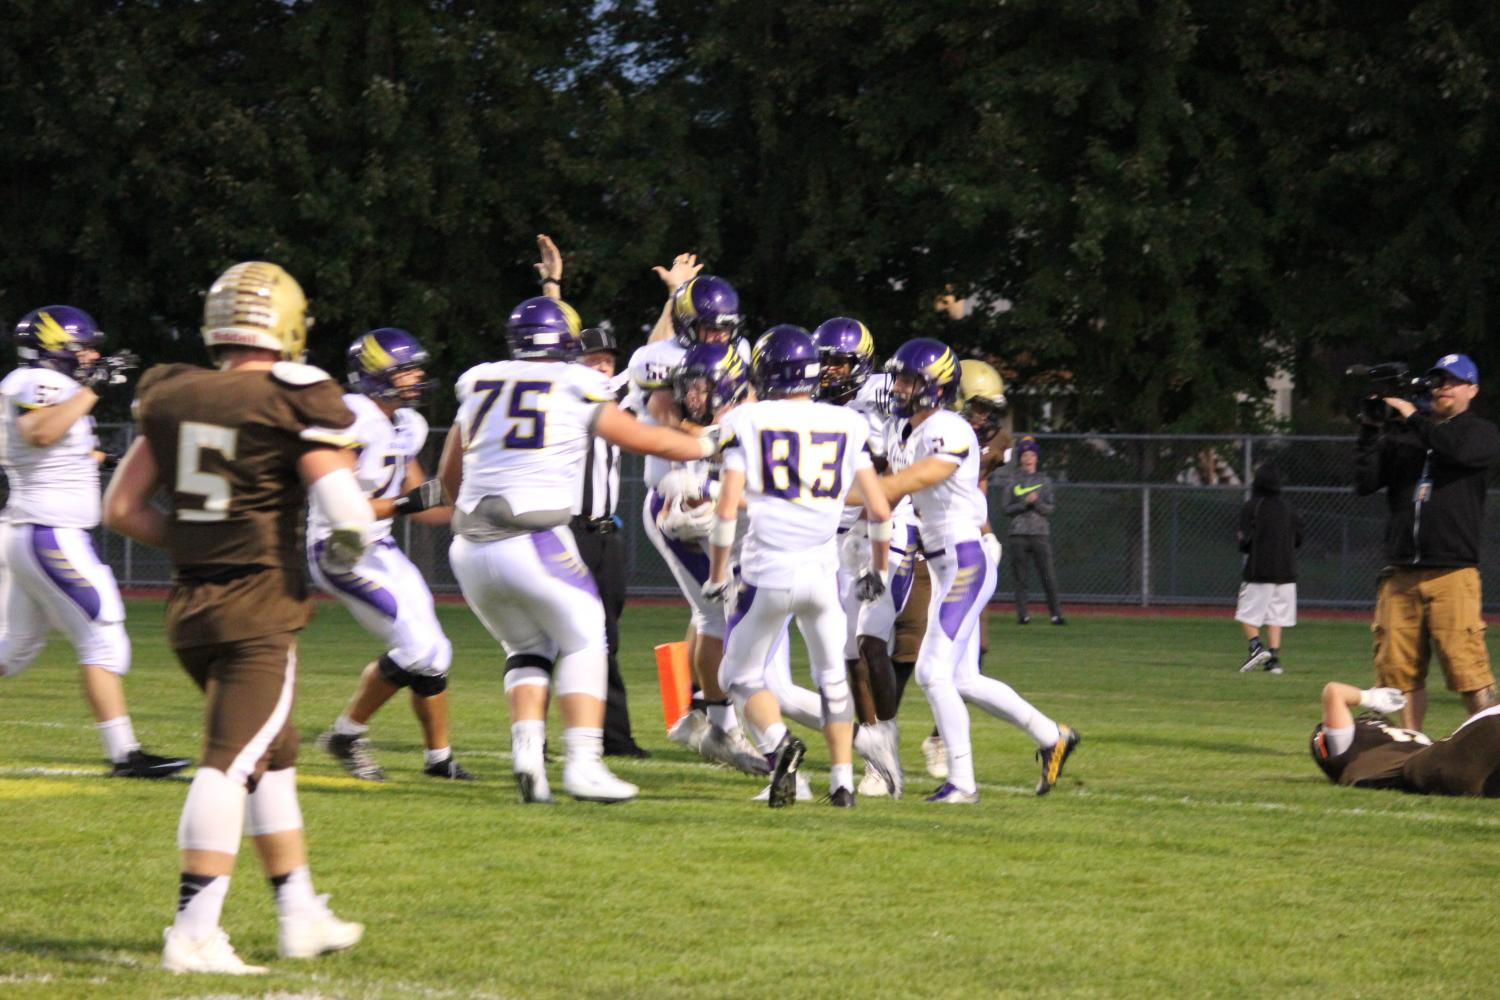 Chaska celebrates its first touchdown in a win over Apple Valley in AVHS' homecoming game.